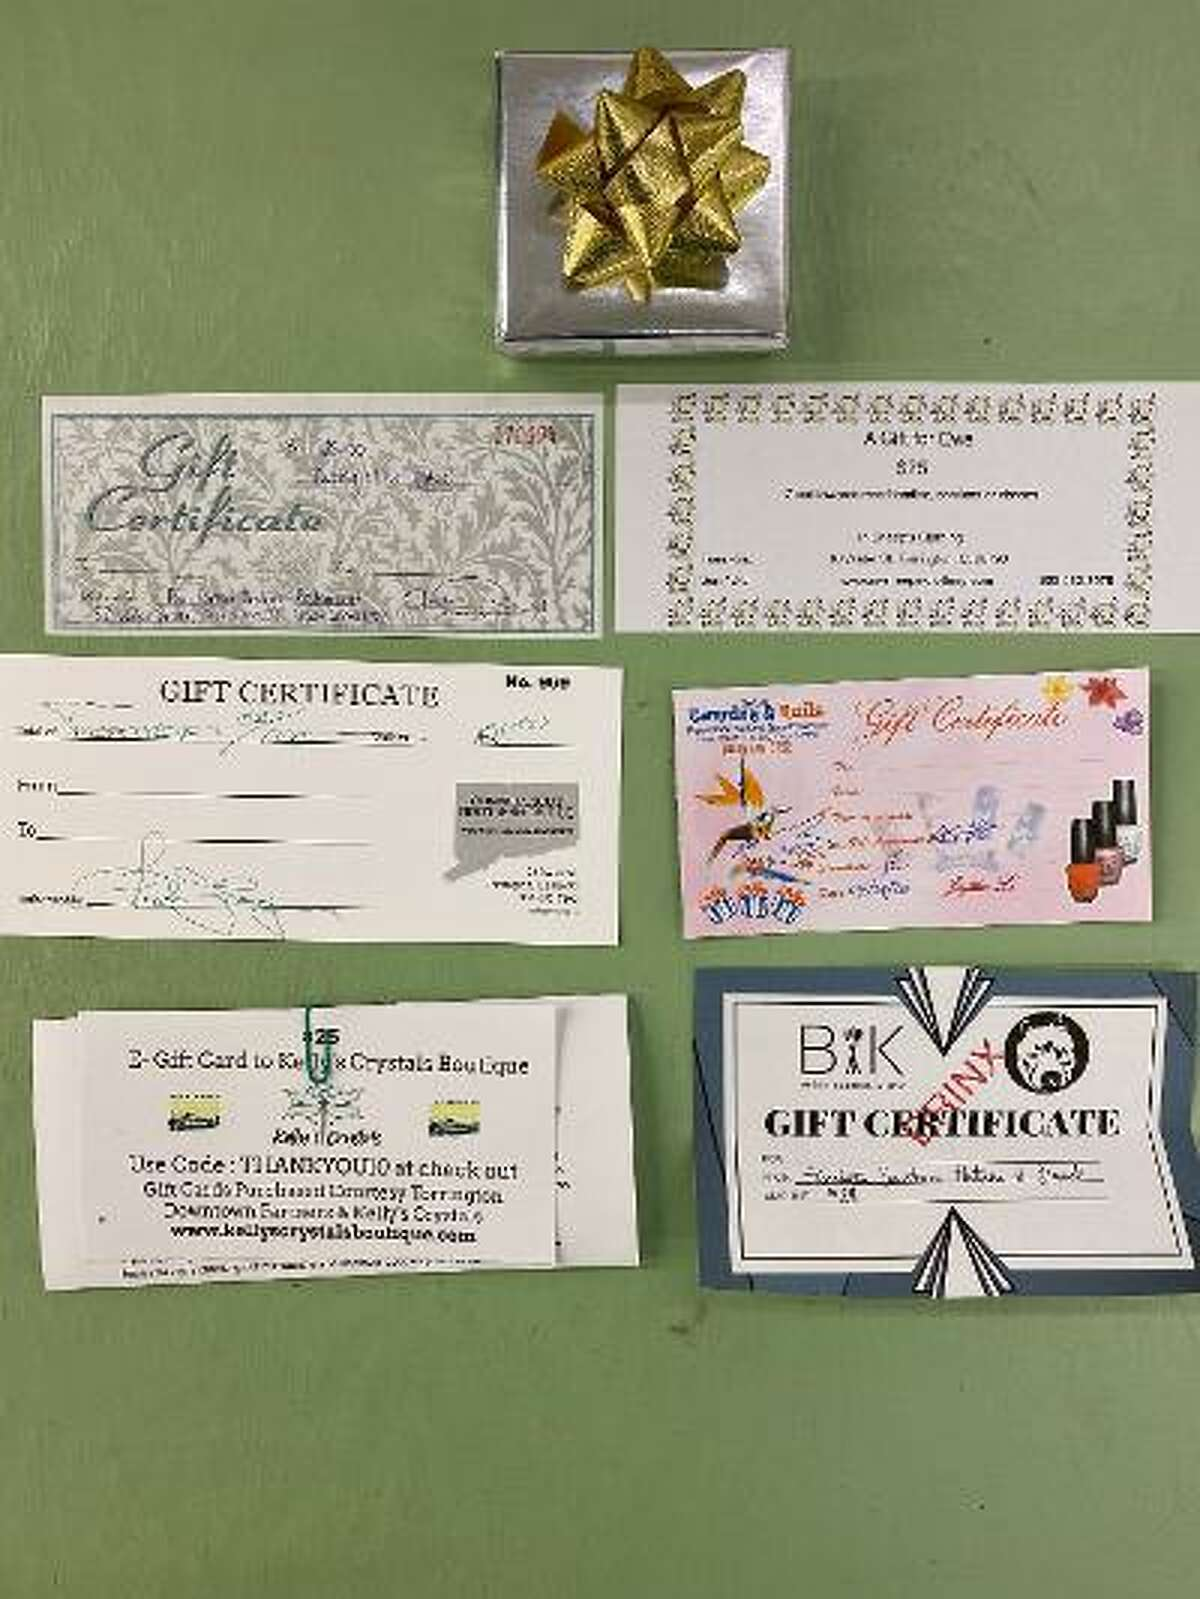 The Torrington Downtown Partnersorganized a gift card collection totaling $3,500 in value from seven businesses. With a generous contribution by the partners to share the cost,the groupcollected 140 gift cards valued at $25 each.